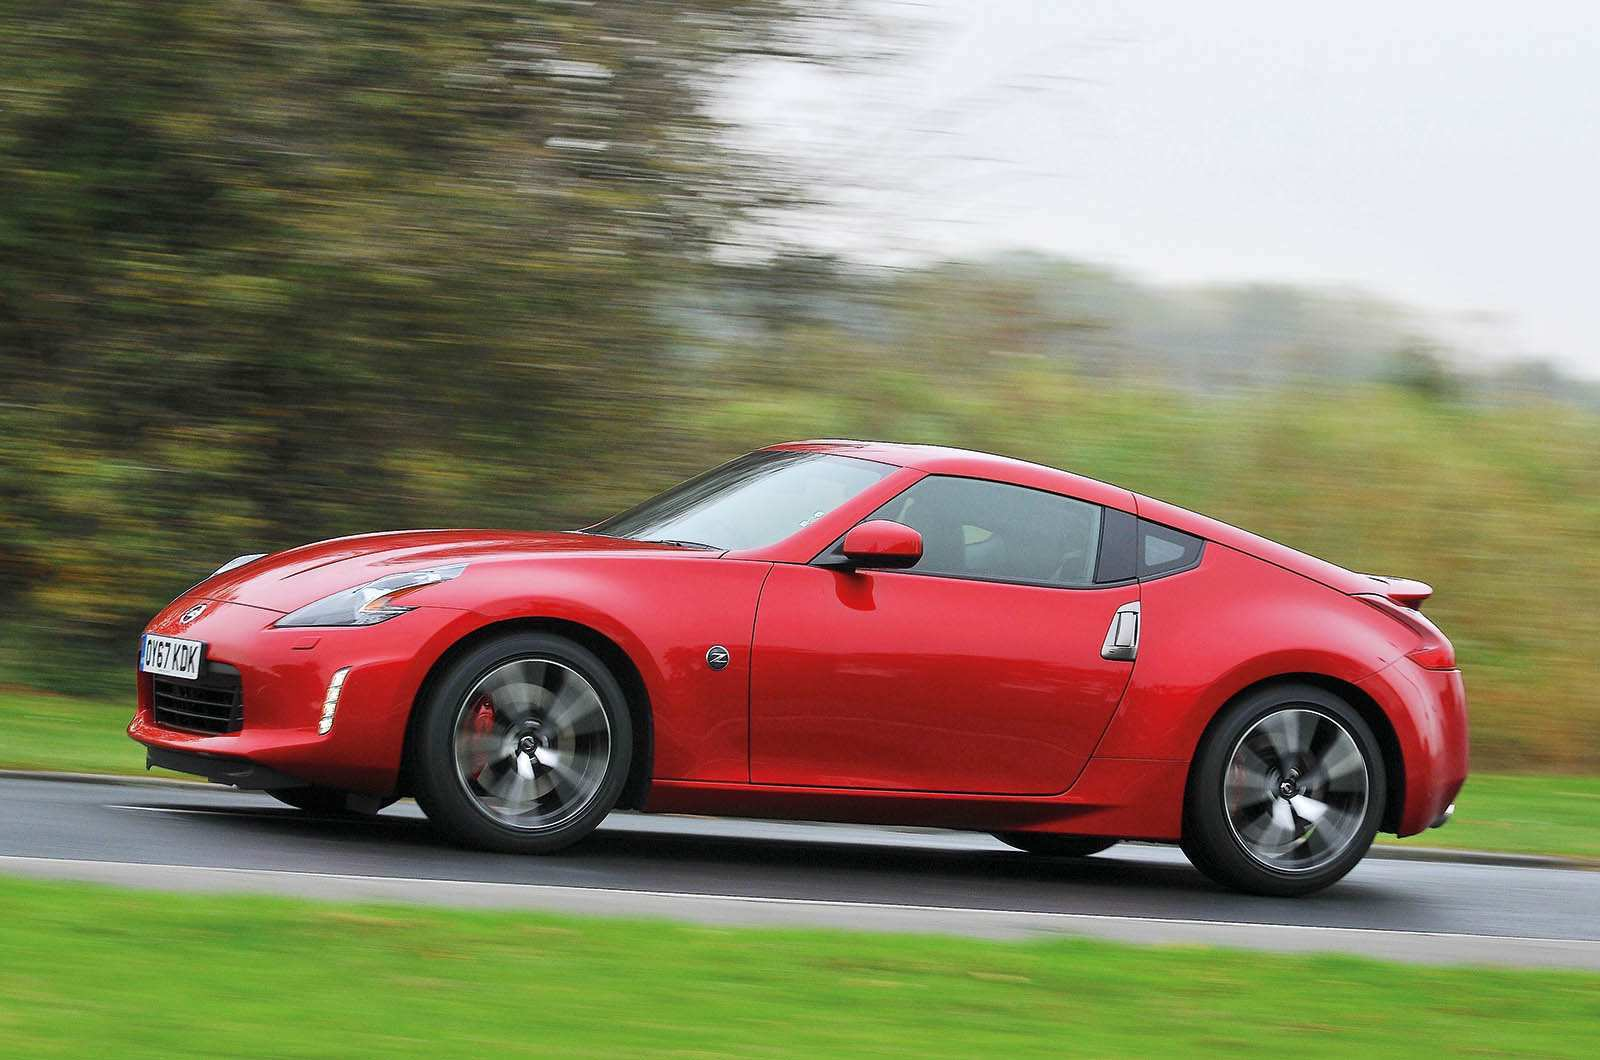 79 Gallery of New Nissan Z35 First Drive for New Nissan Z35